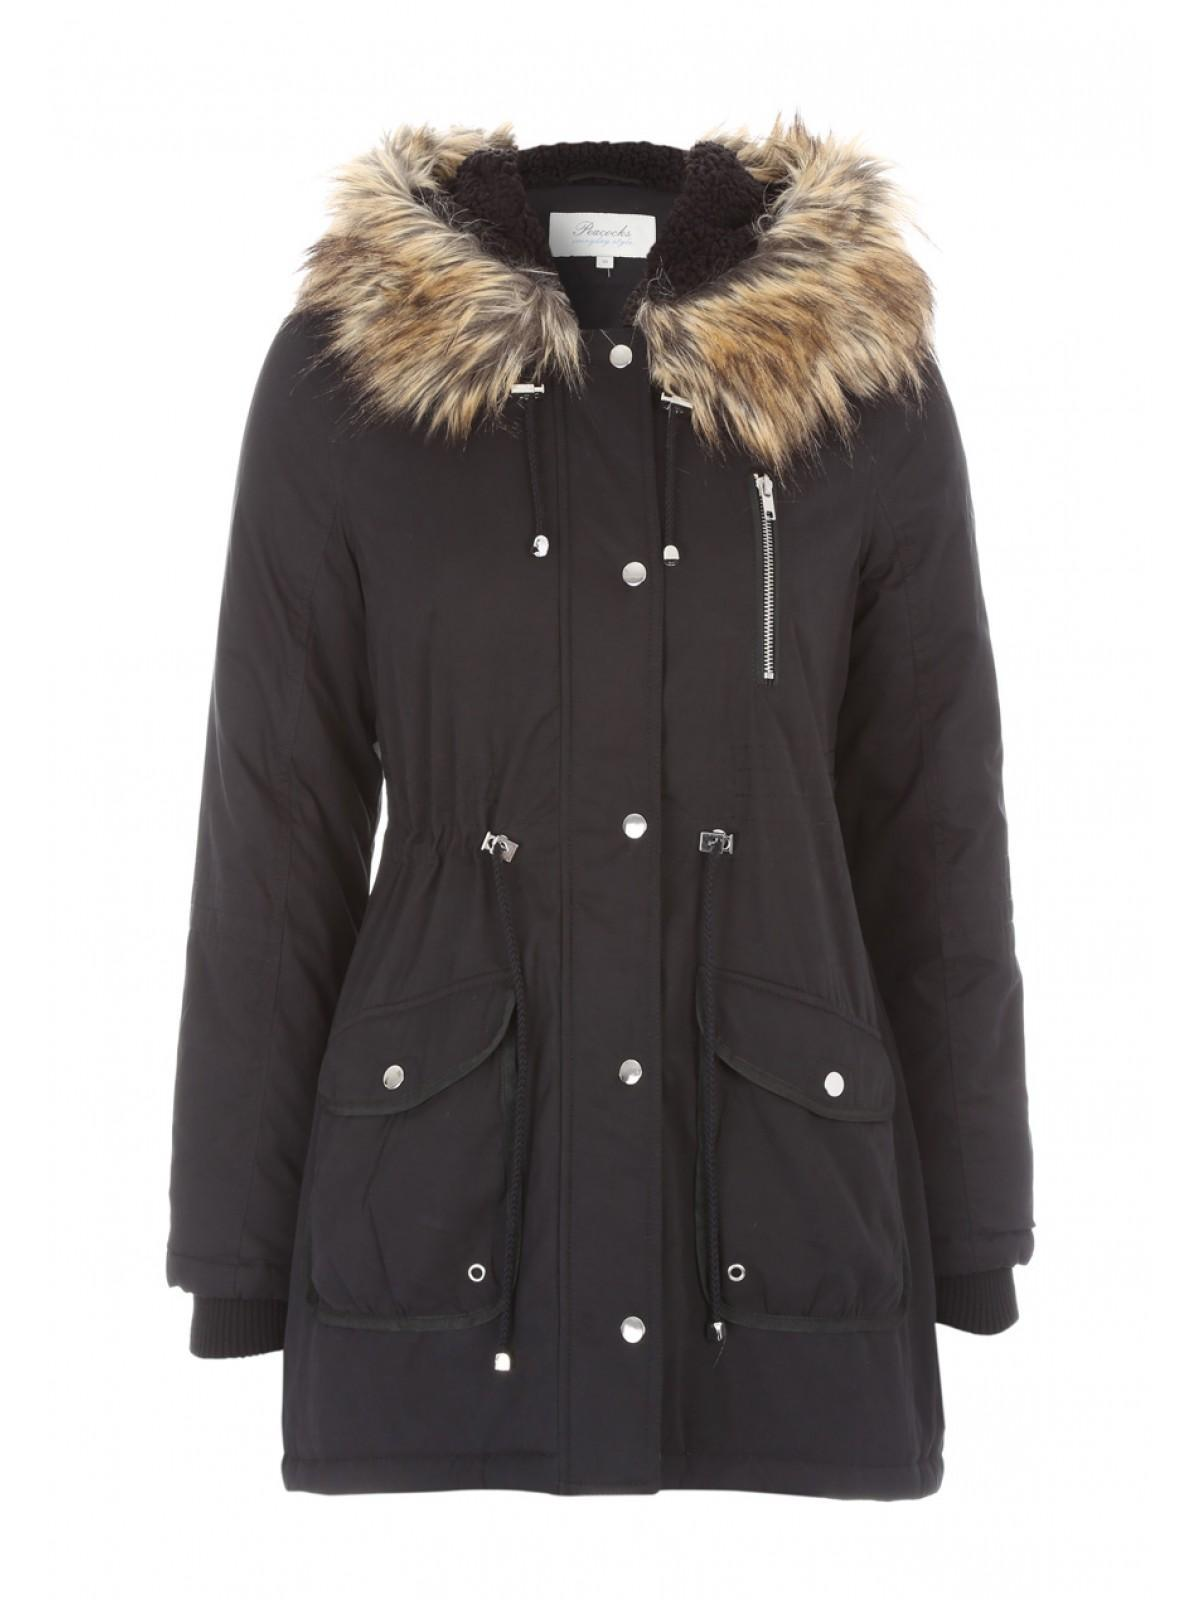 Womens Faux Fur Hood Parka Coat | Peacocks